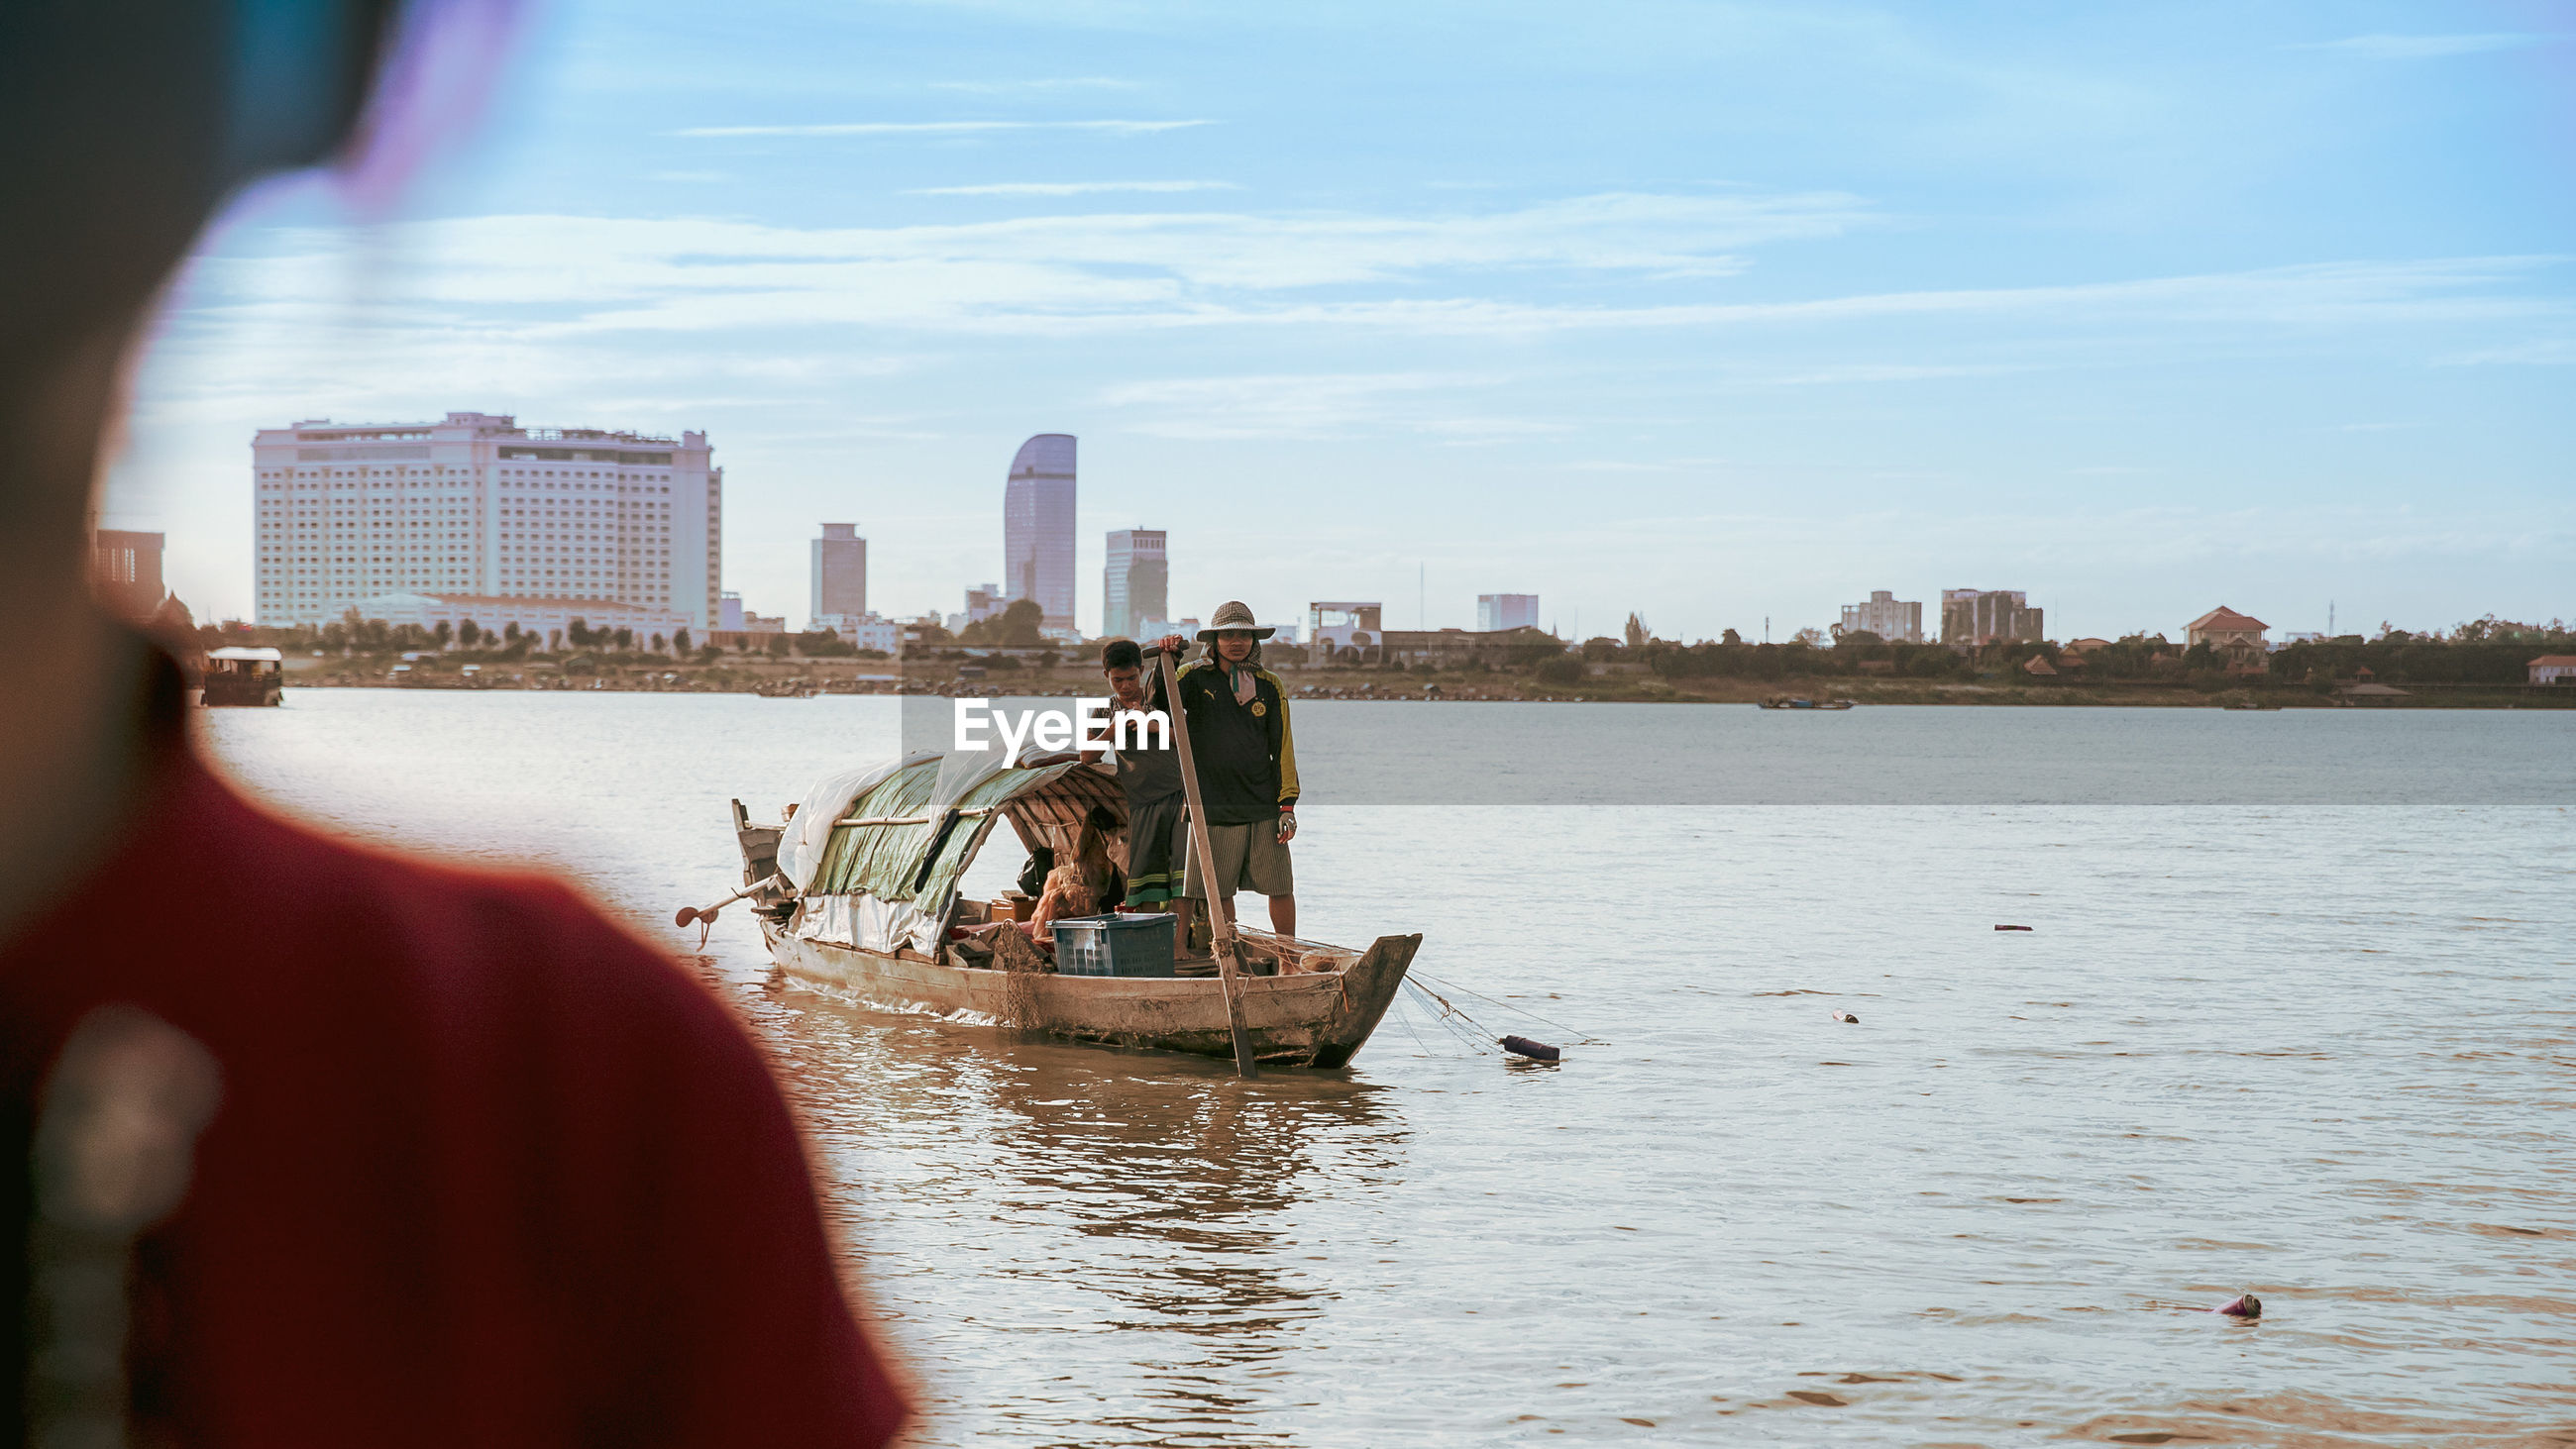 People in wooden boat on river against sky